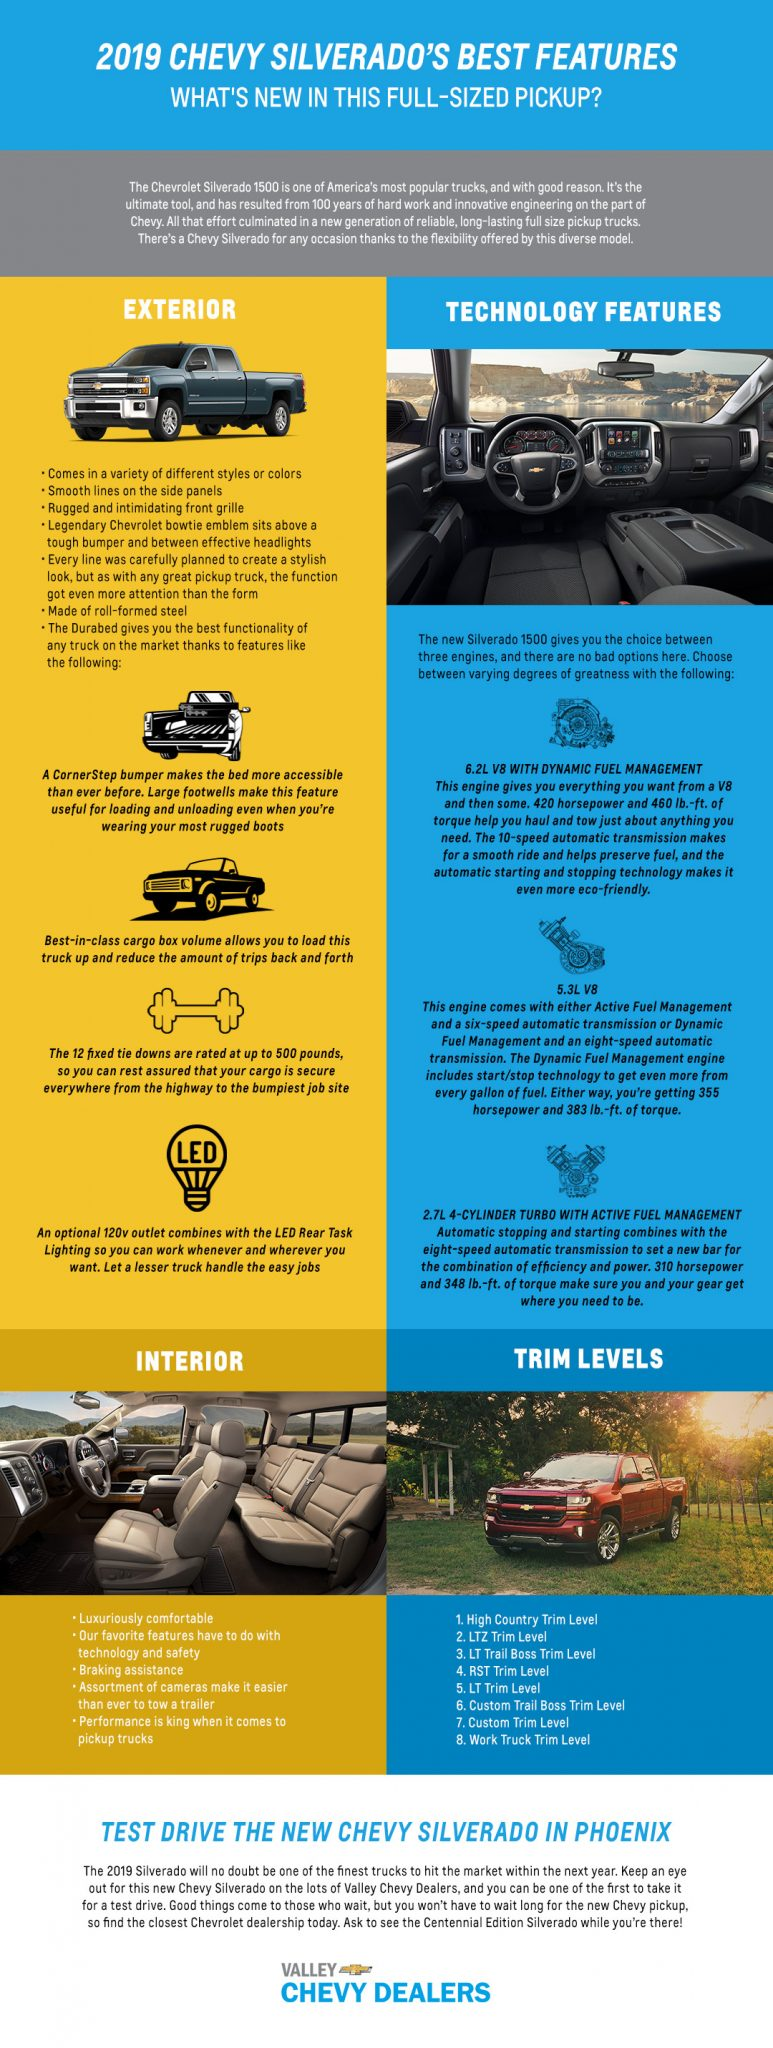 2019 Chevy Silverado's Best Features Infograph